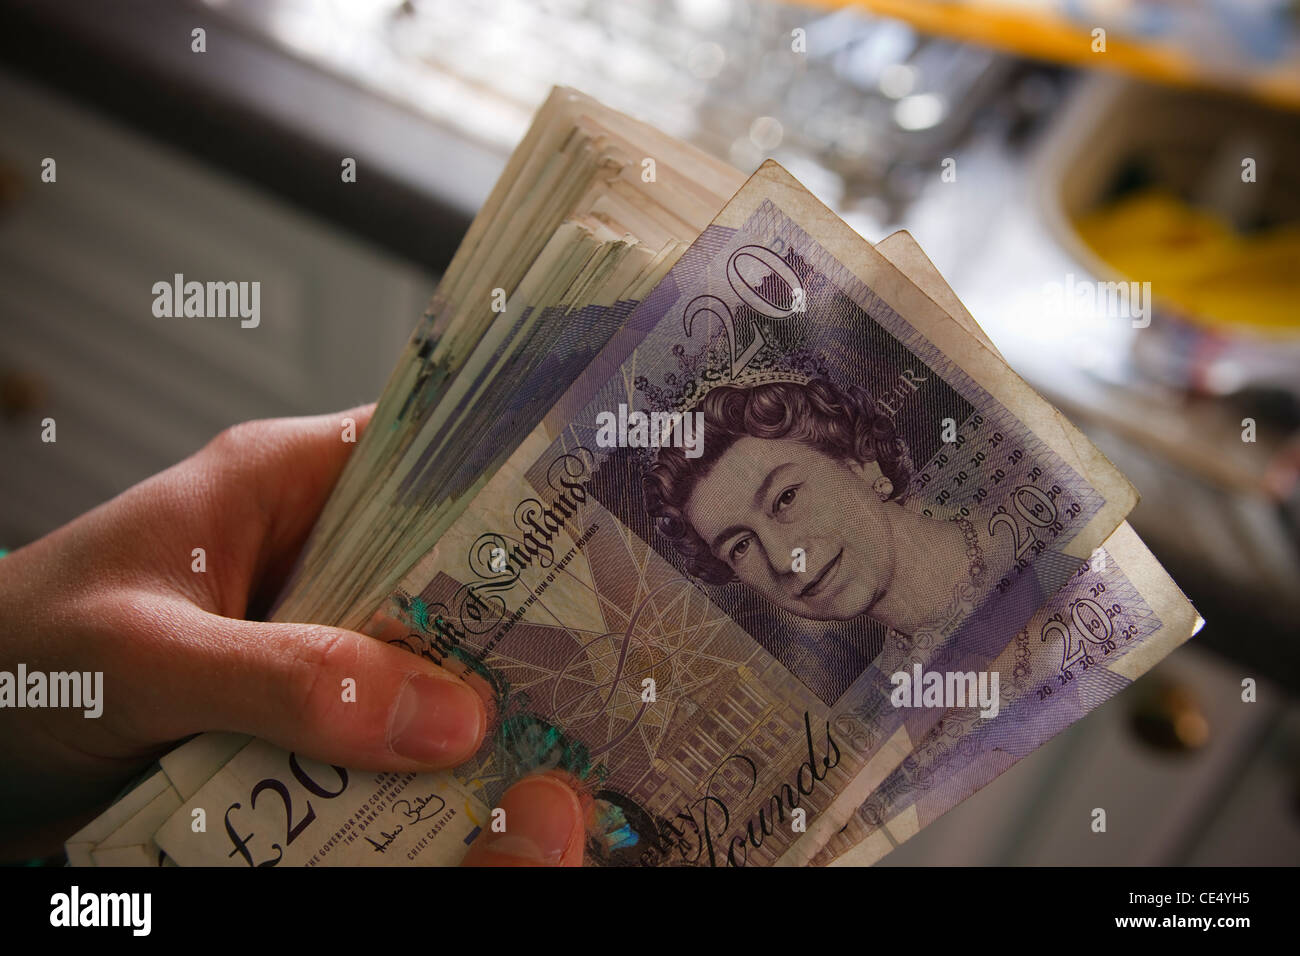 holding fan money £20 notes GBR sterling currency view landscape young man teenager model released hands stash - Stock Image